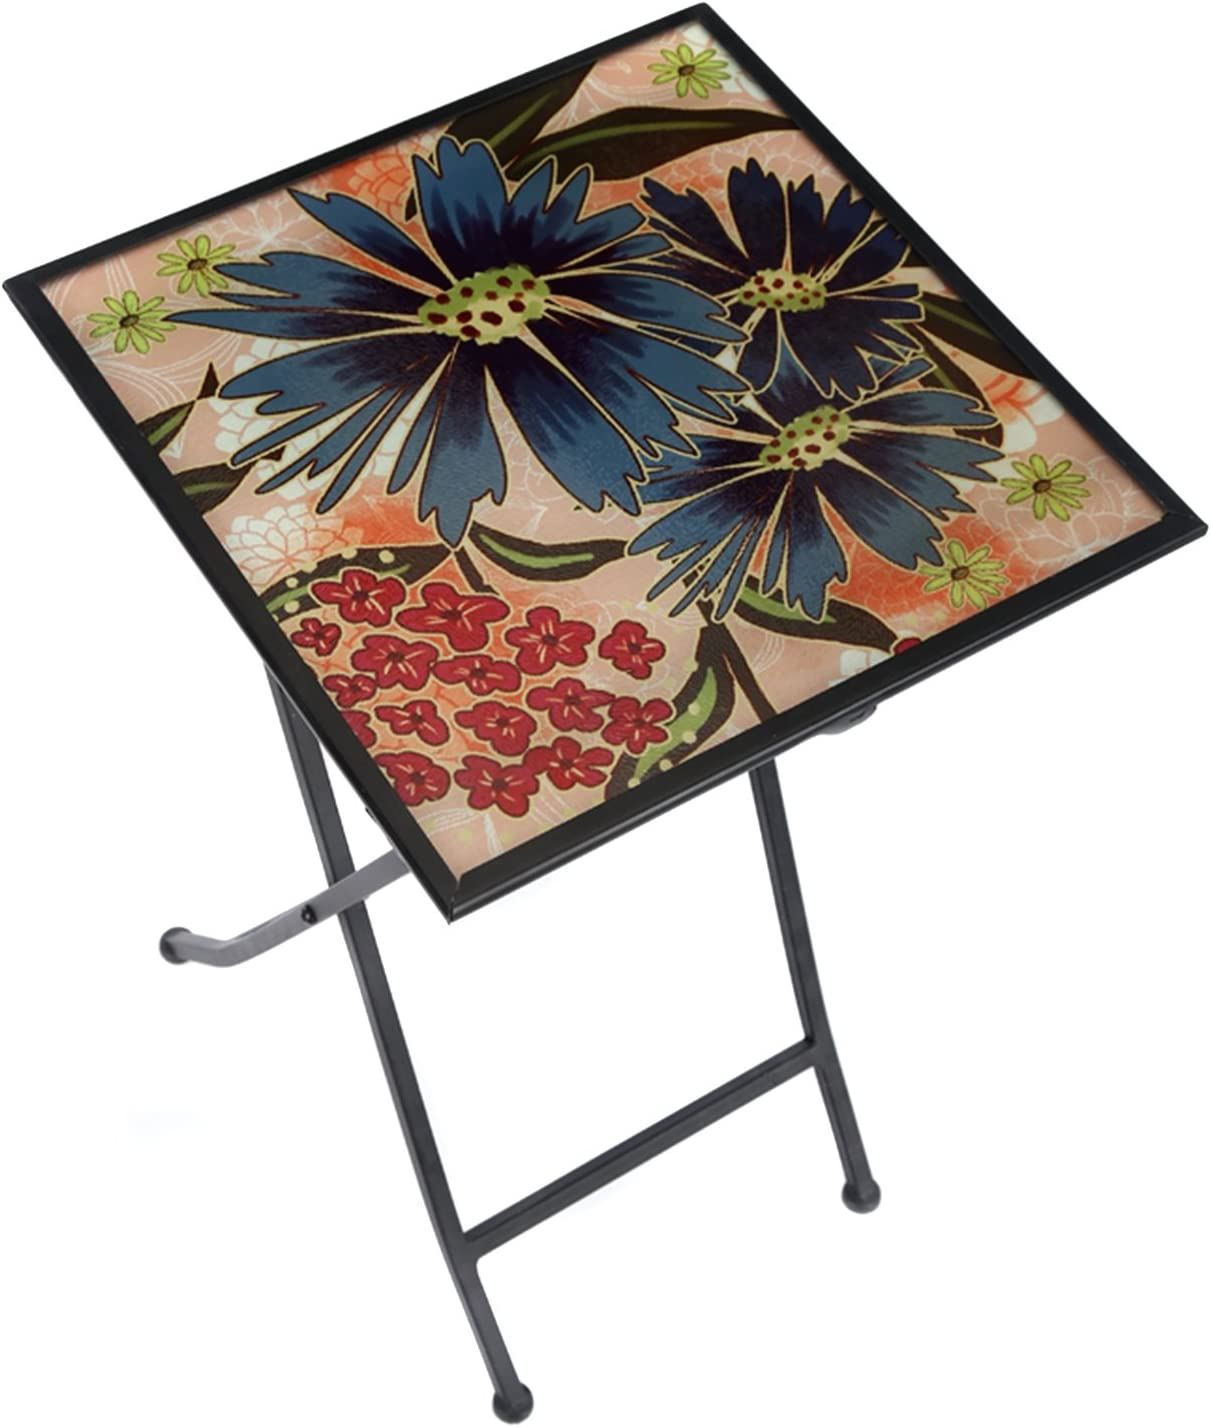 CEDAR HOME Side Table Outdoor Garden Patio Metal Accent Desk with Square Hand Painted Glass, Blue